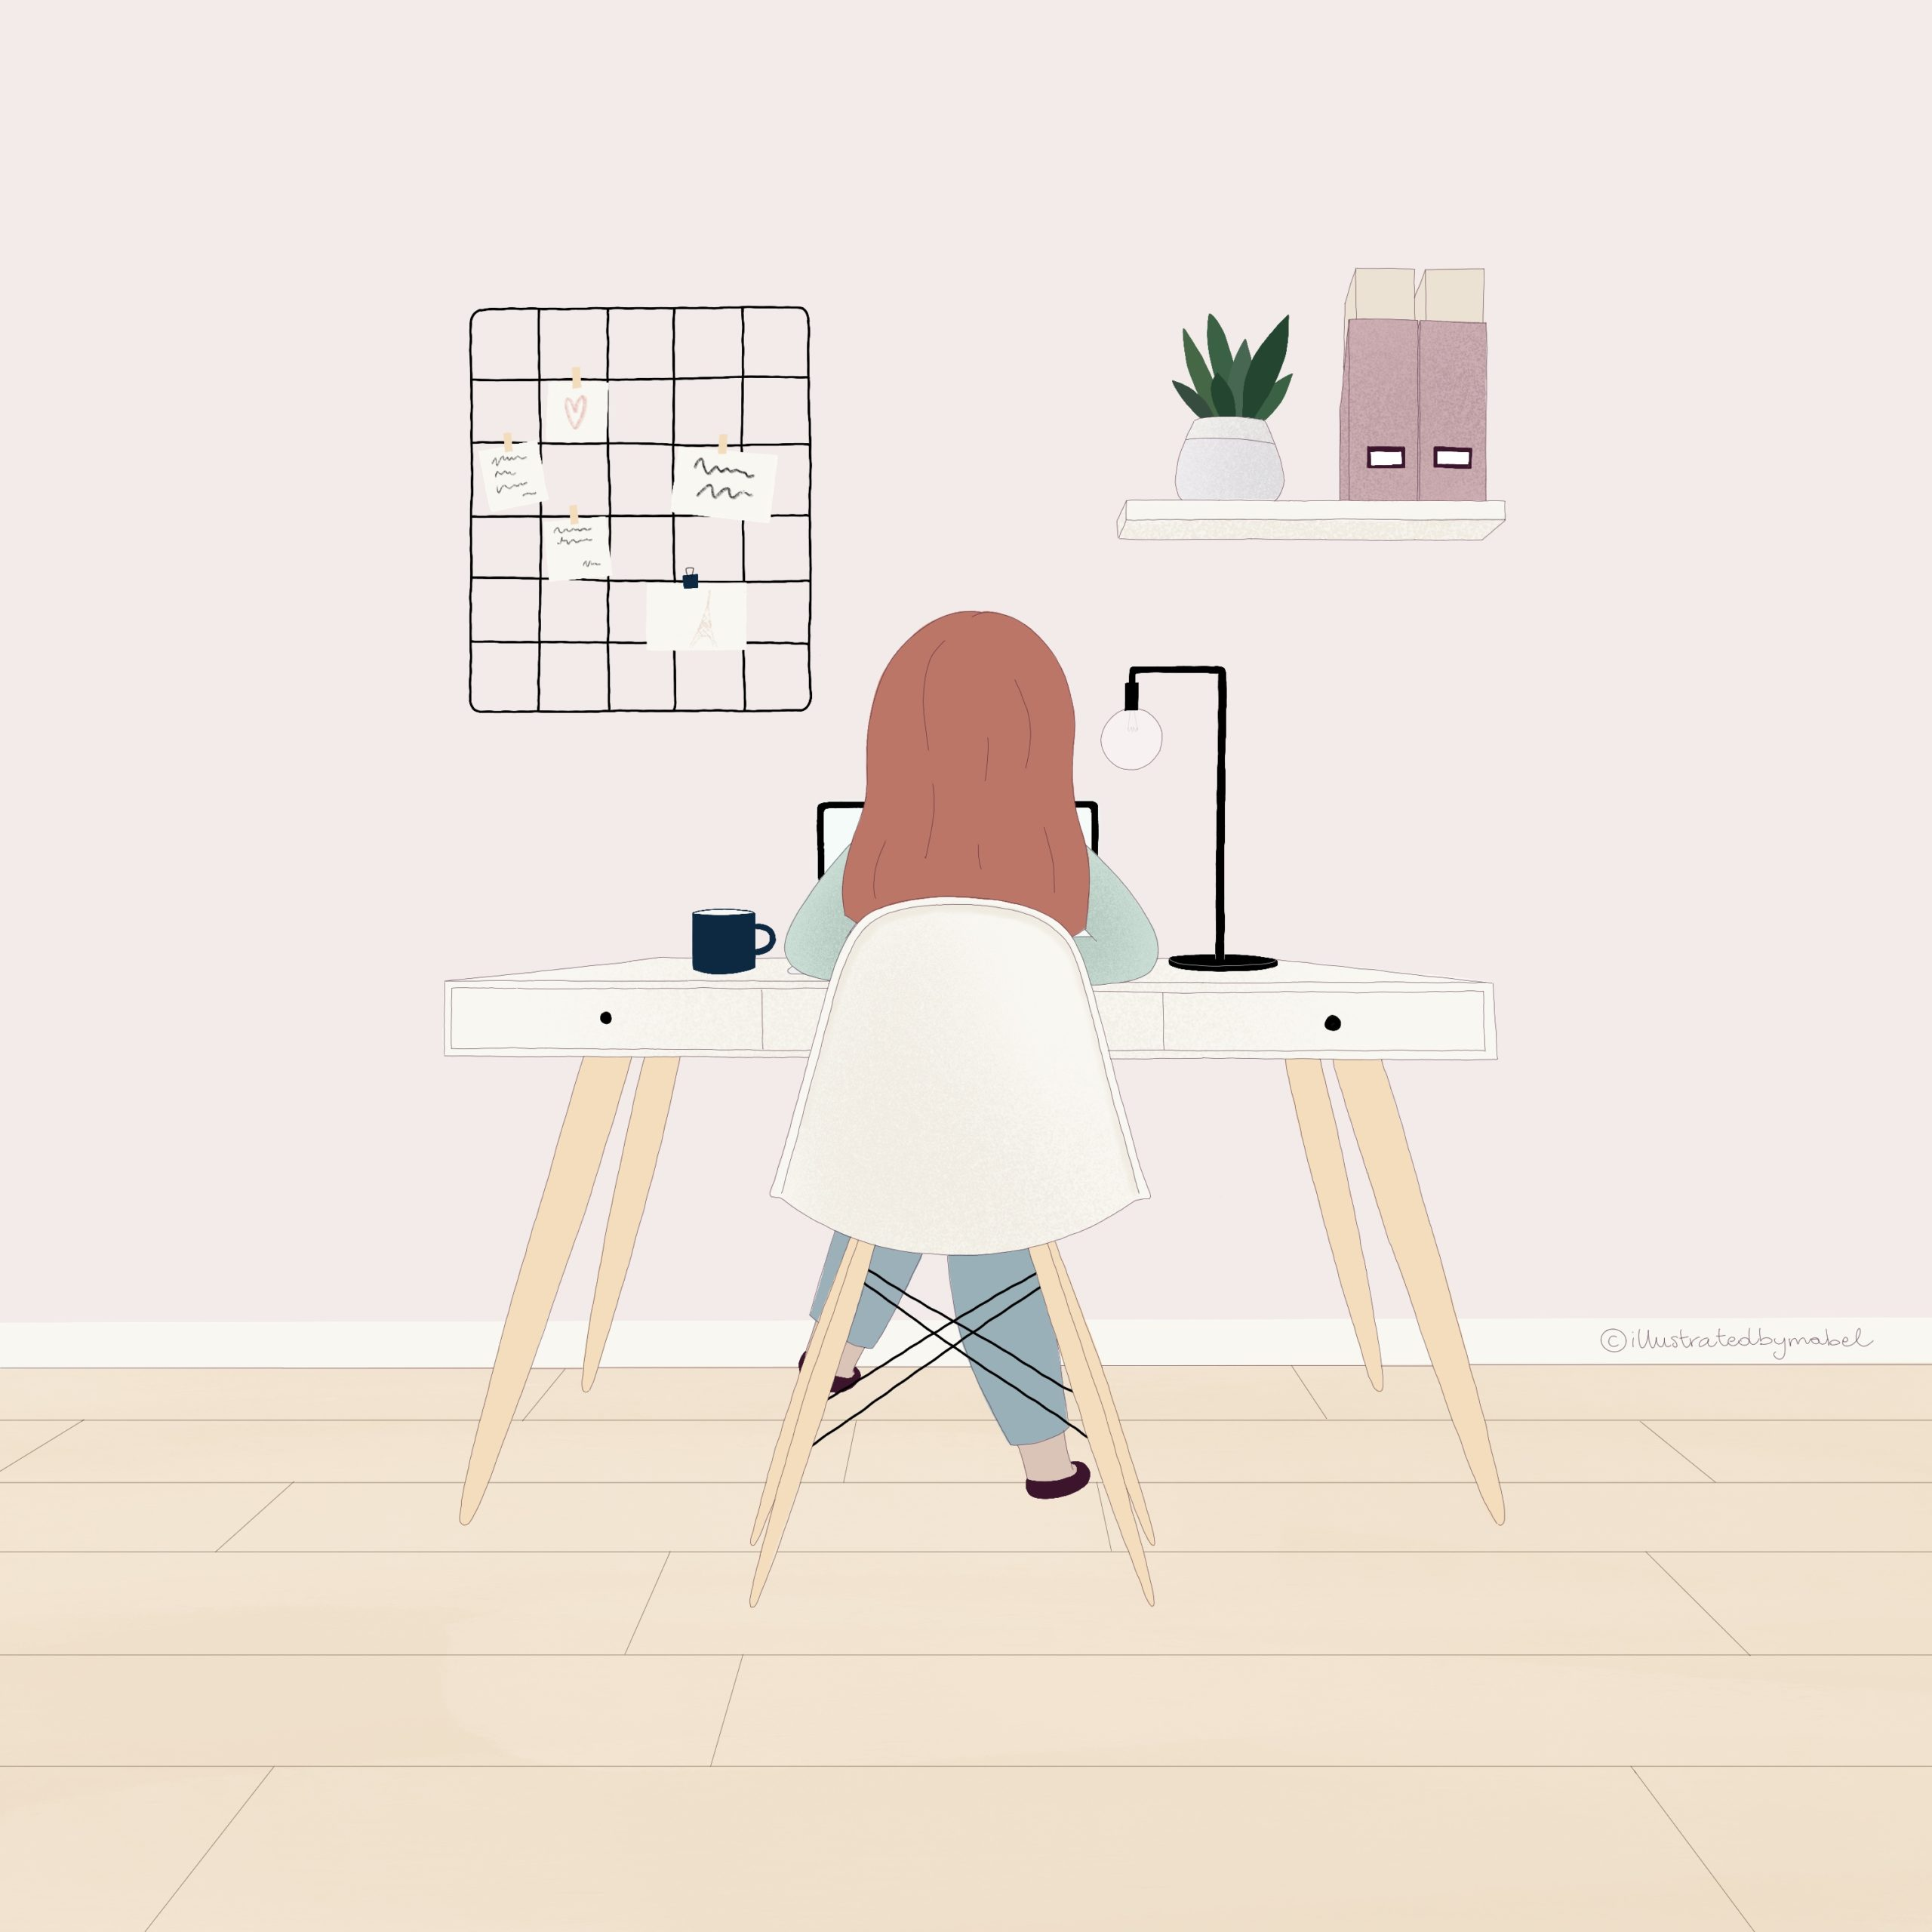 Custom illustration services - girl working at a desk in a modern and stylish room seen from the back.